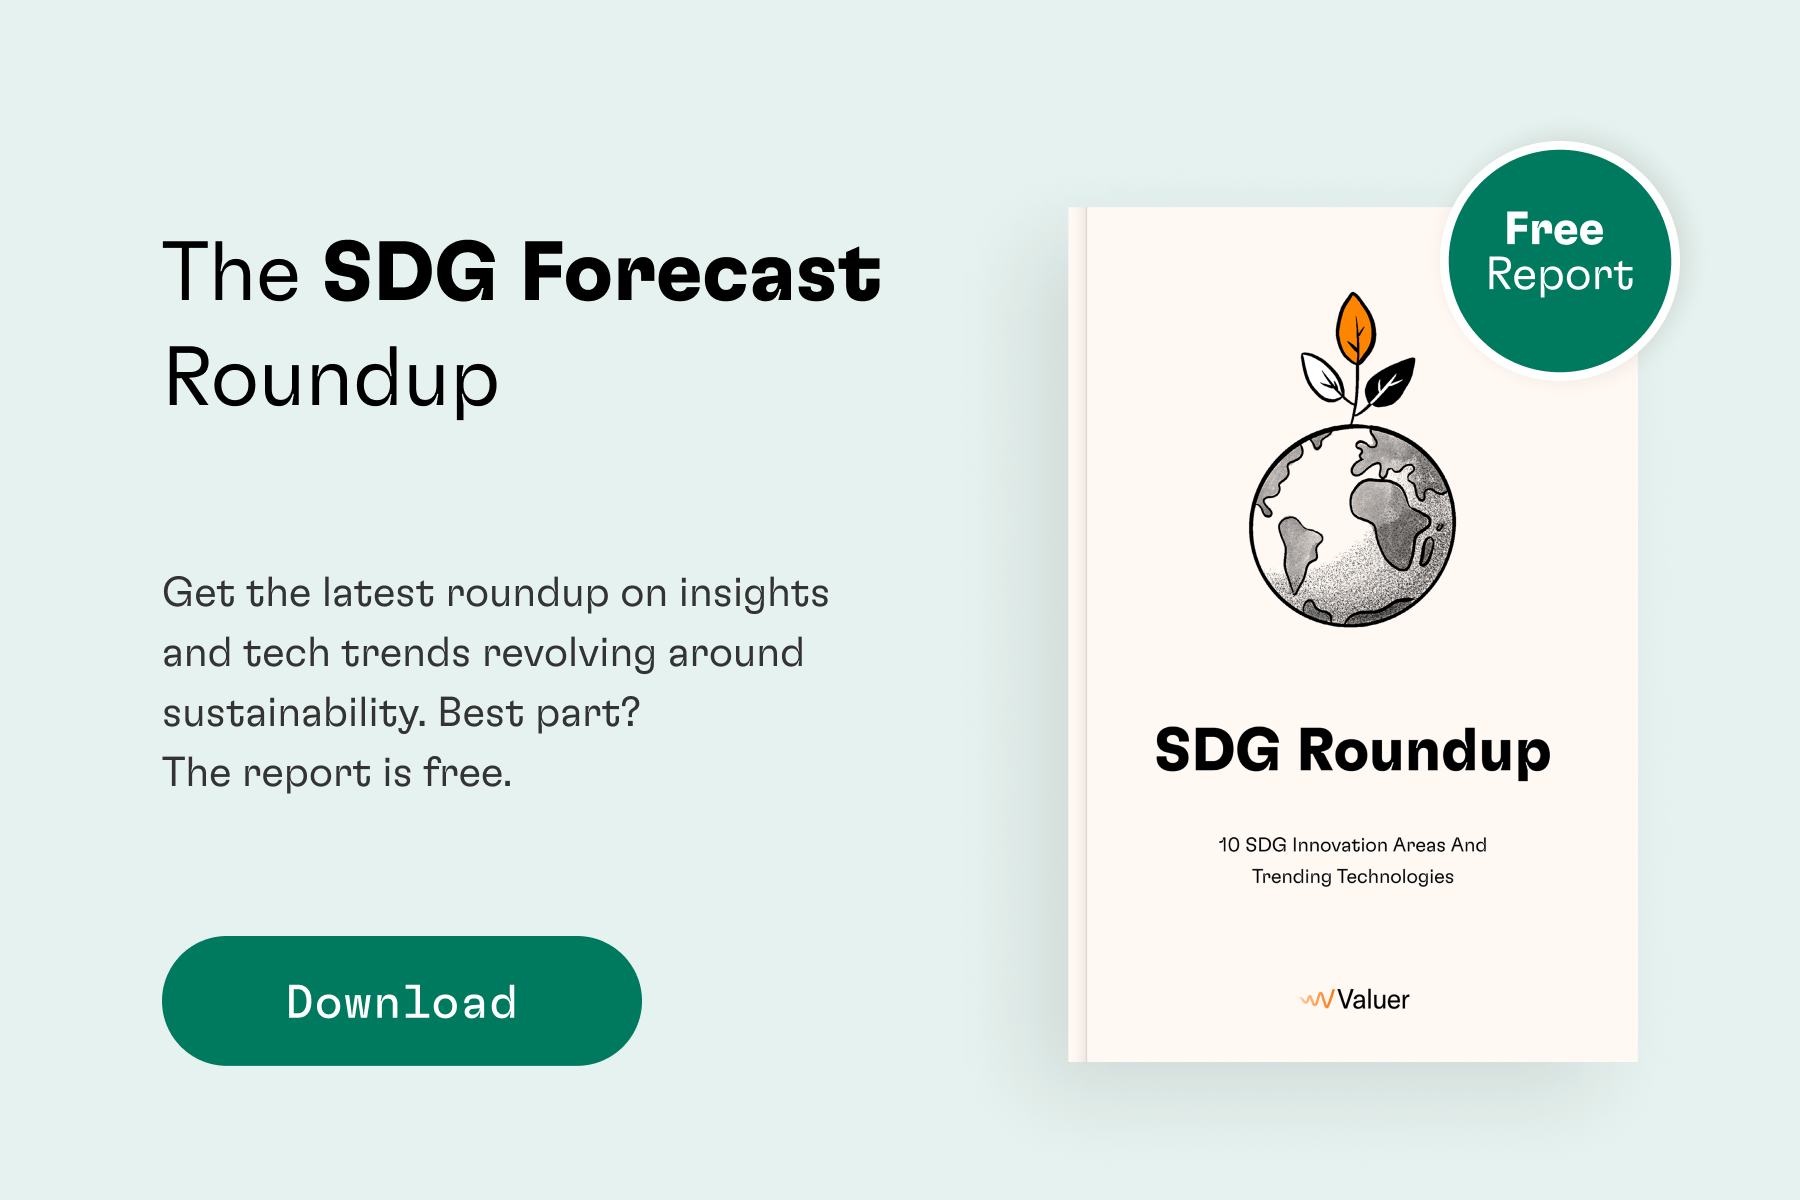 Download SDG Forecast Roundup